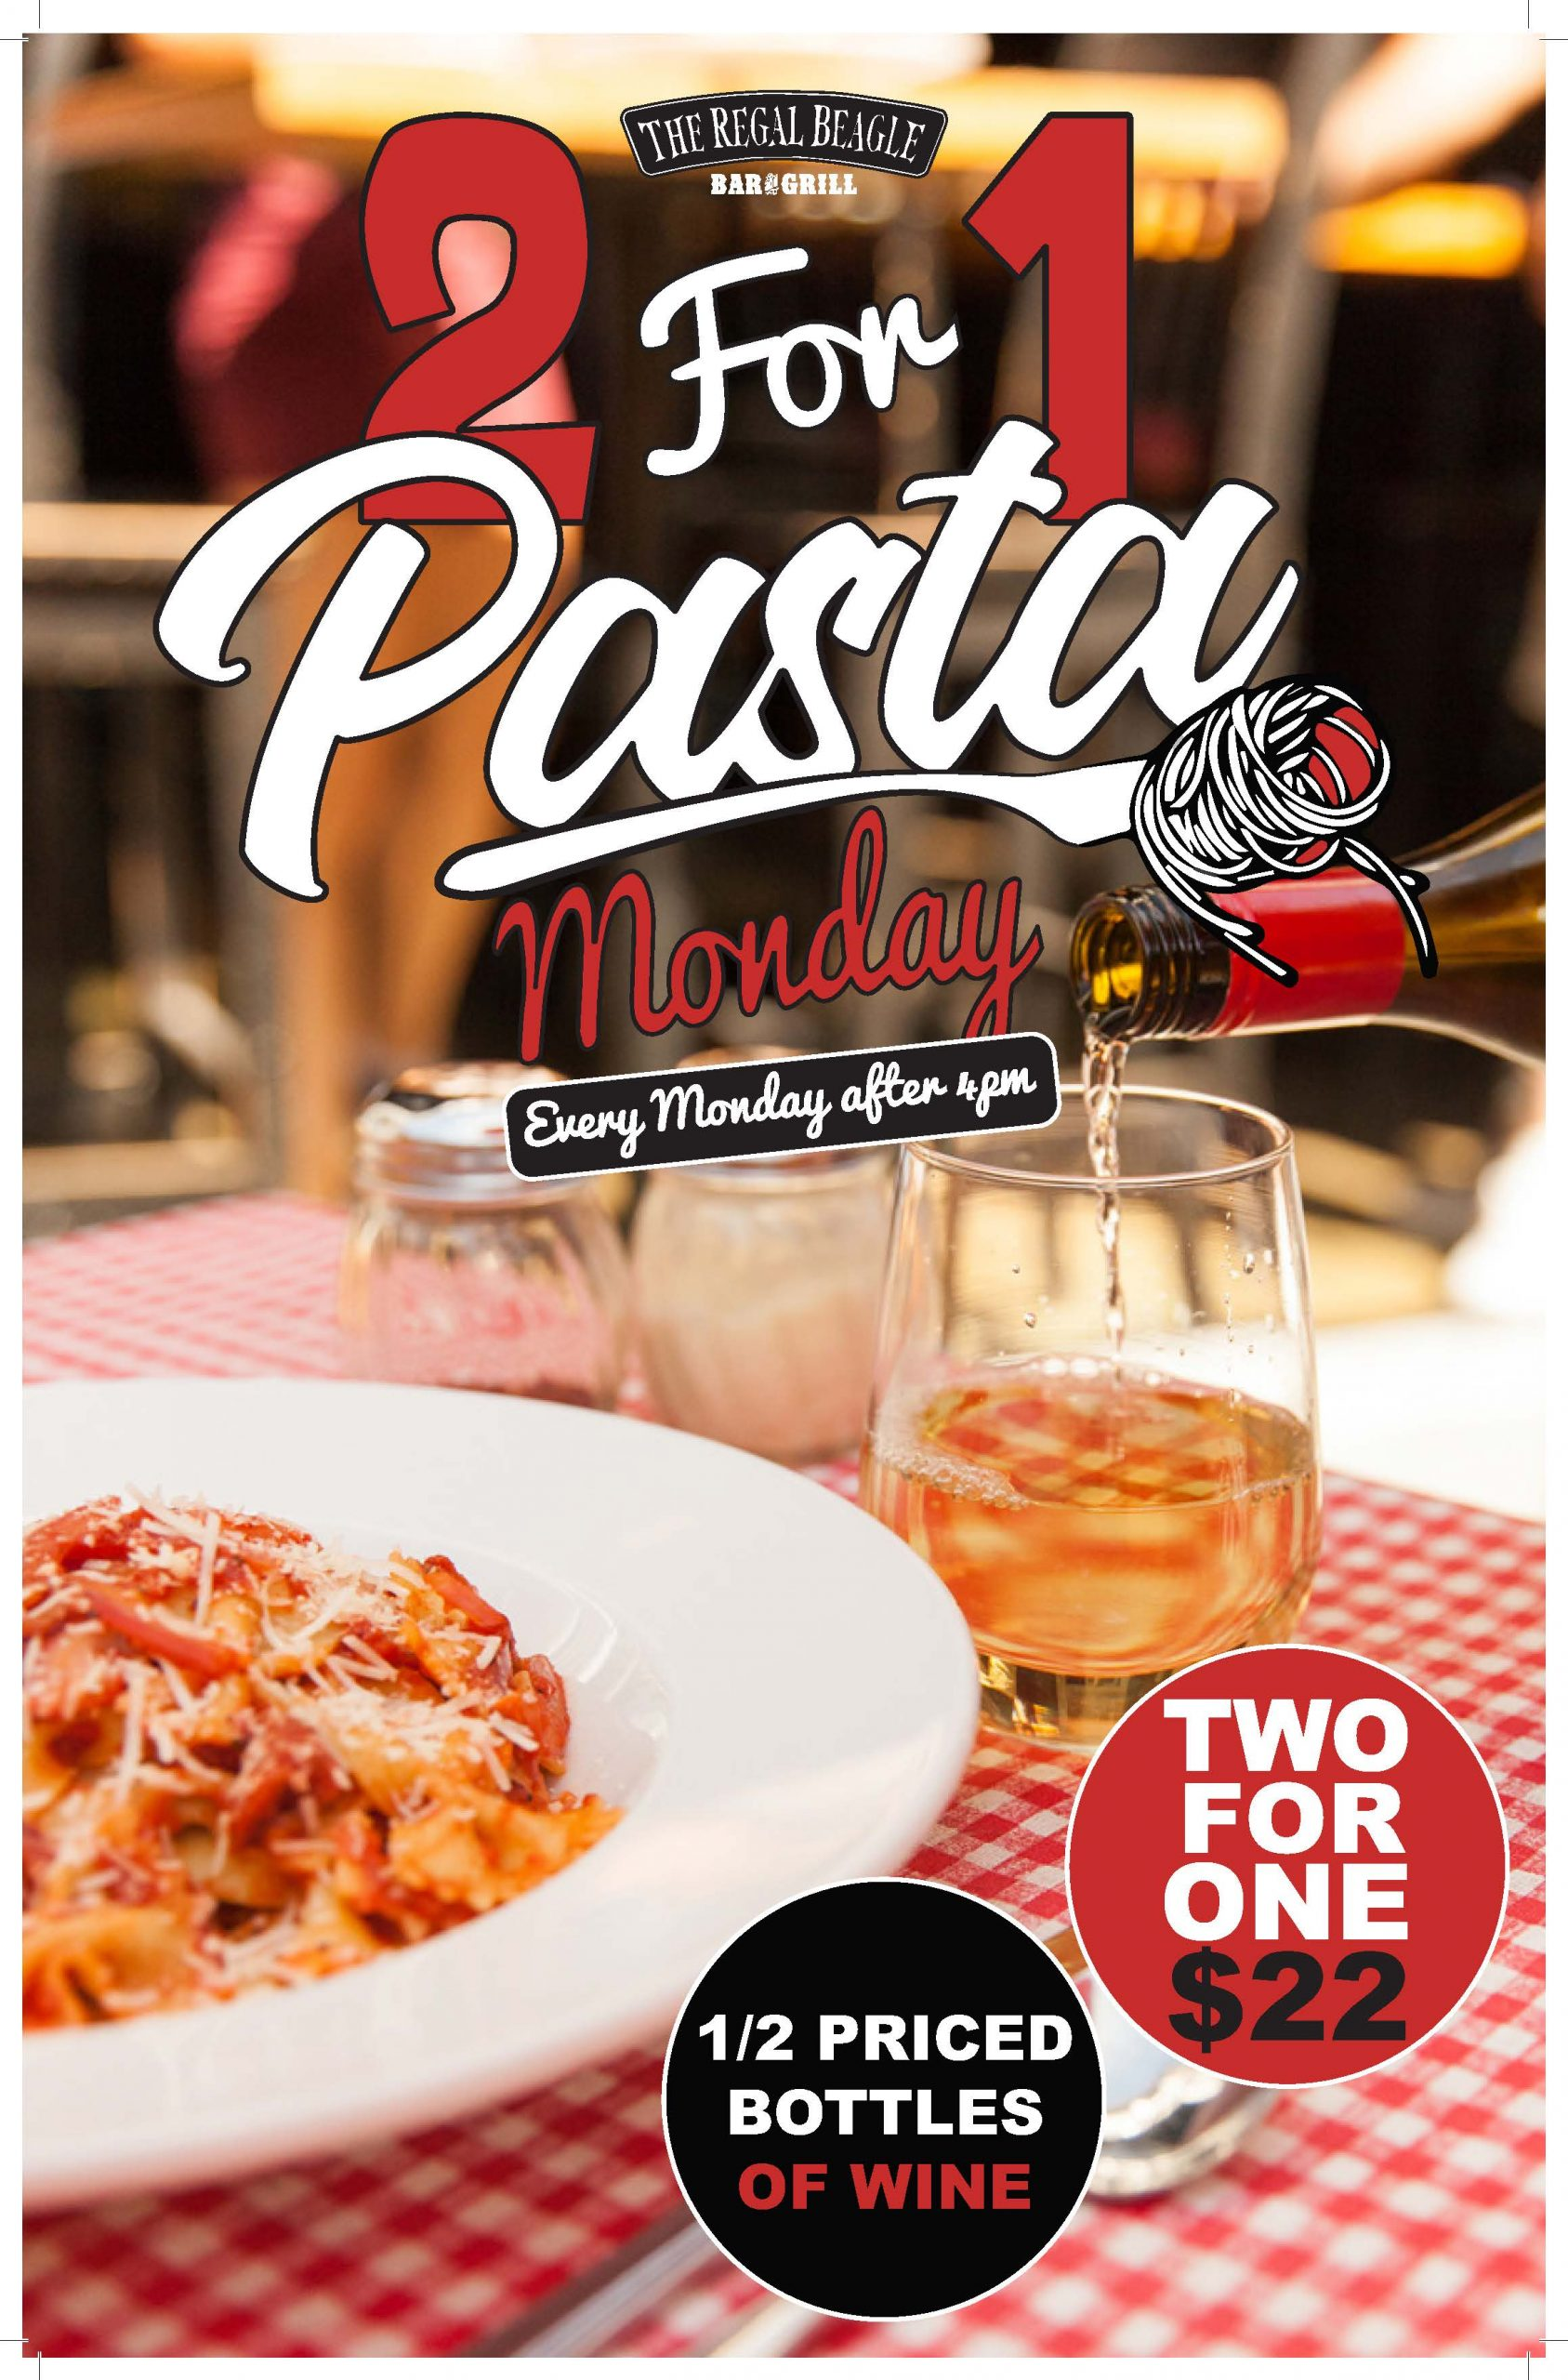 Image of pasta and a glass of wine on a checkered red and white table cloth with text on top: 2 for 1 pasta Monday. Two for one $22. Half price bottles of wine. Every Monday after 4pm.